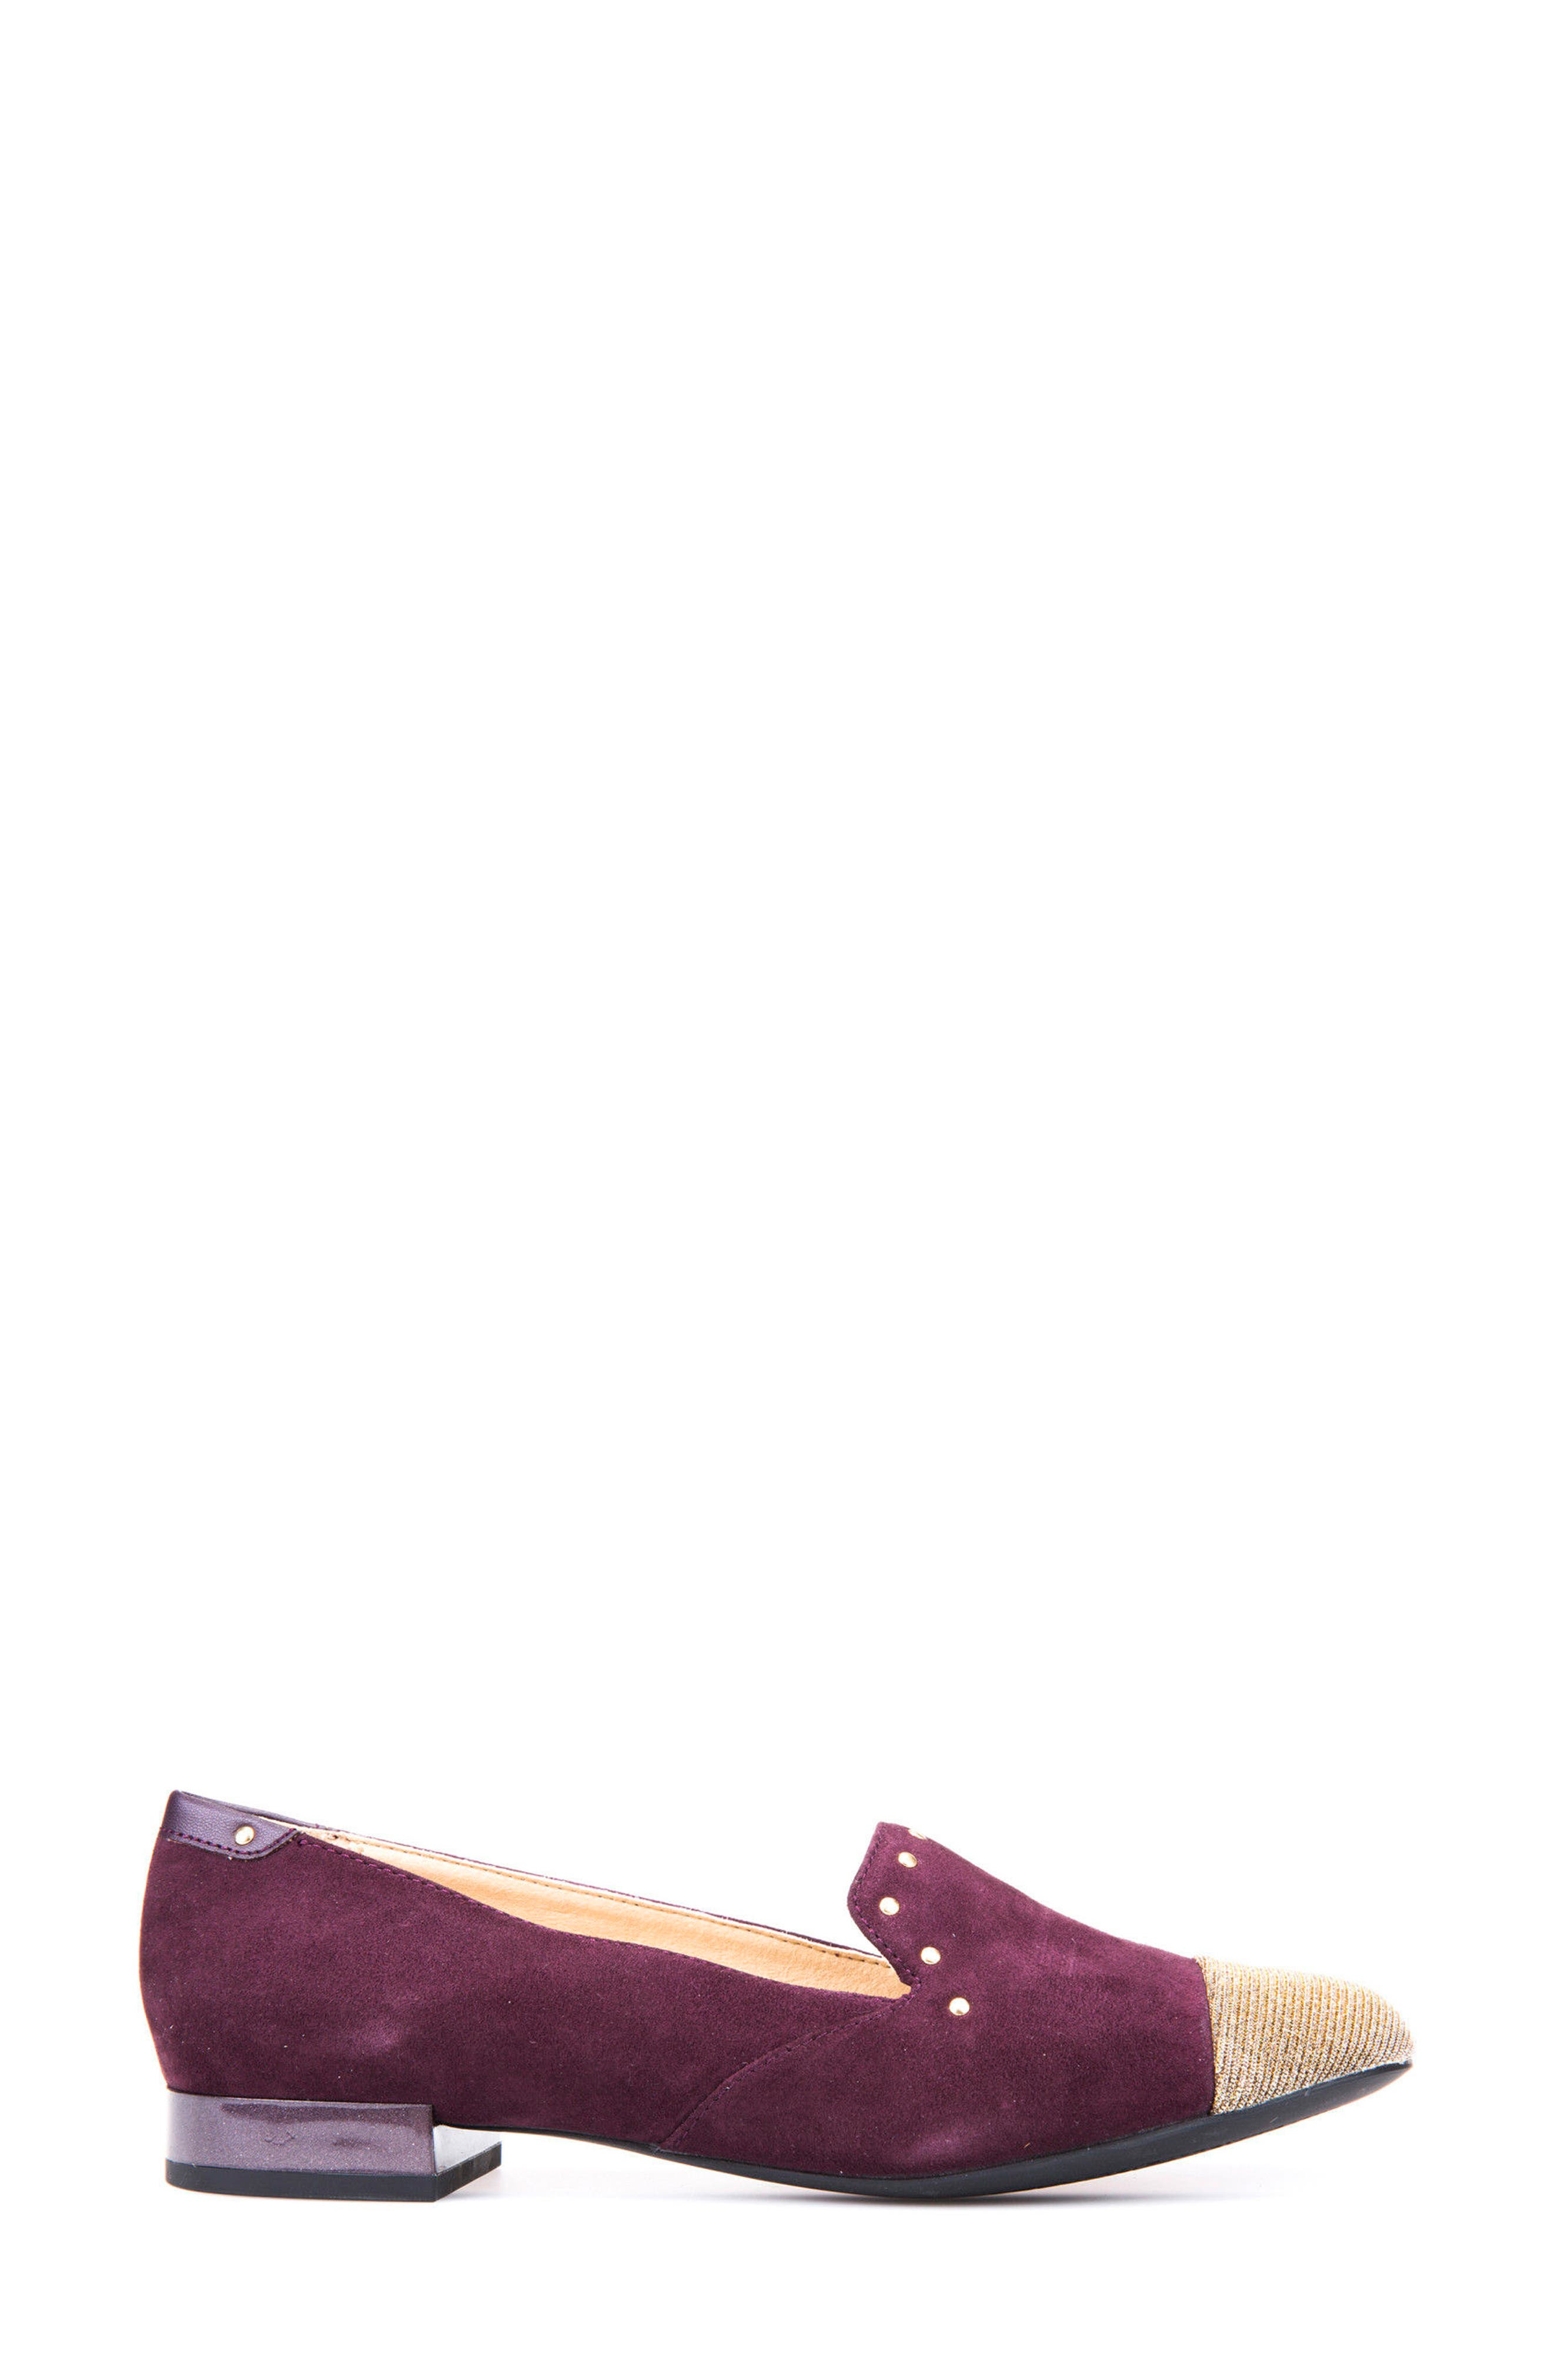 Wistrey Cap Toe Loafer,                             Alternate thumbnail 8, color,